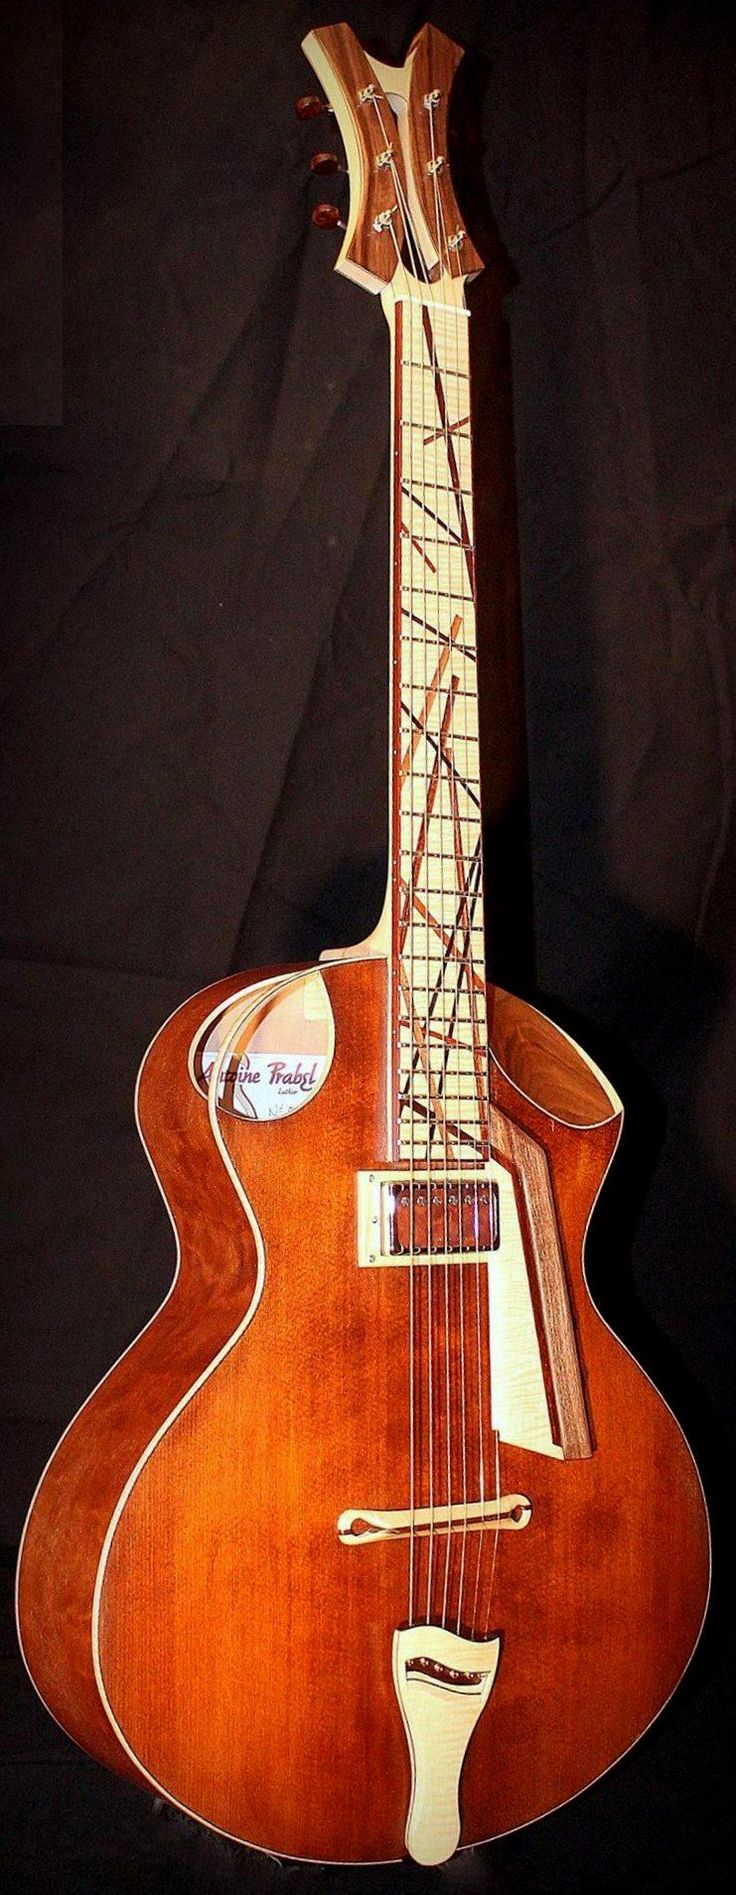 Antoine Prabel hybrid Archtop Guitar - made in Saint Germain au Mont d'Or, France